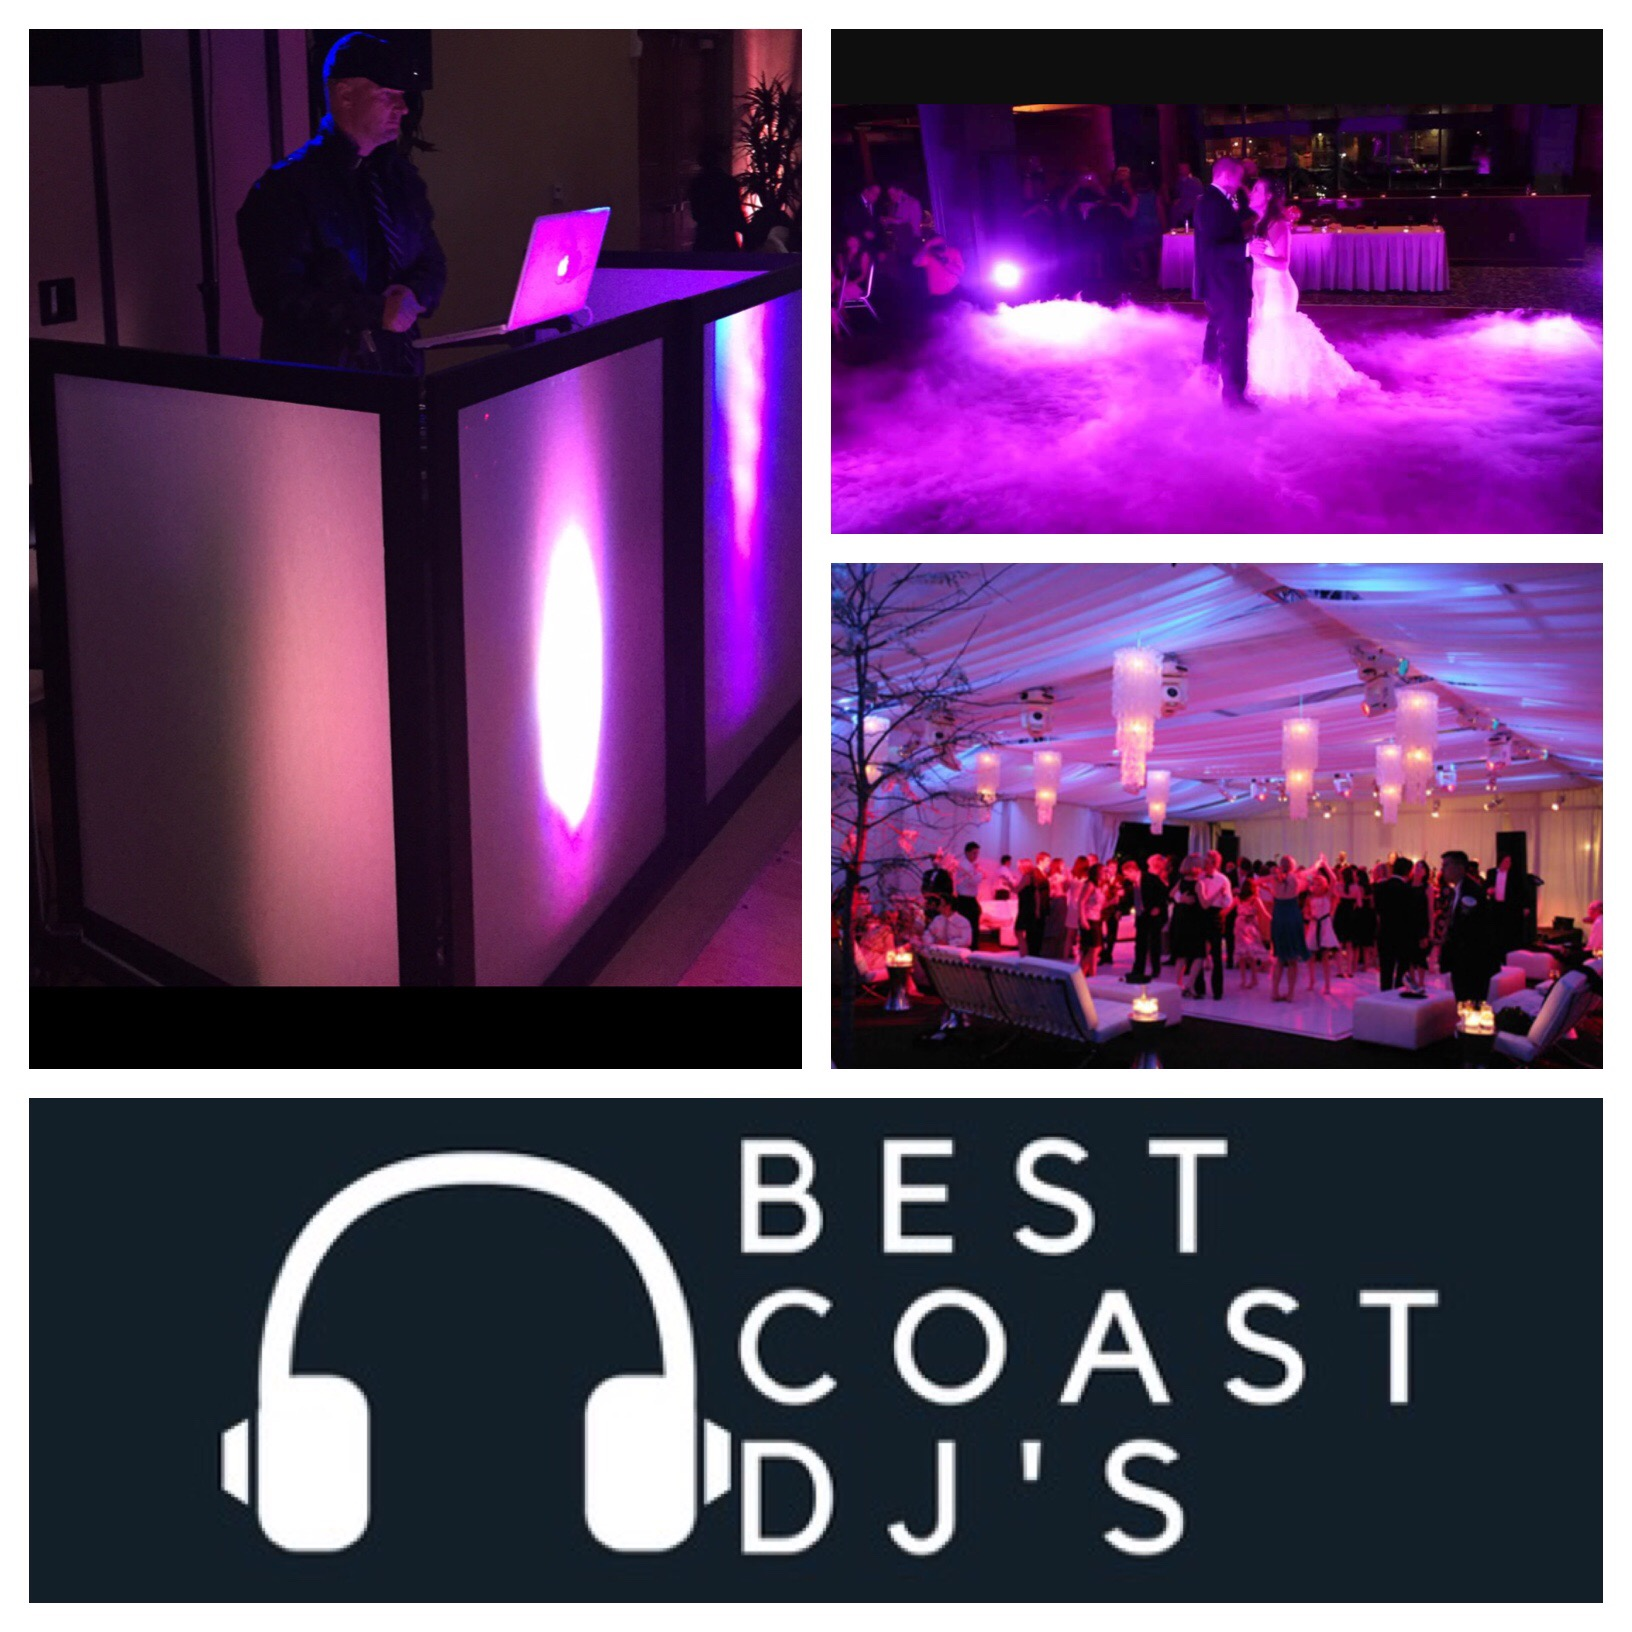 Best Coast DJ's